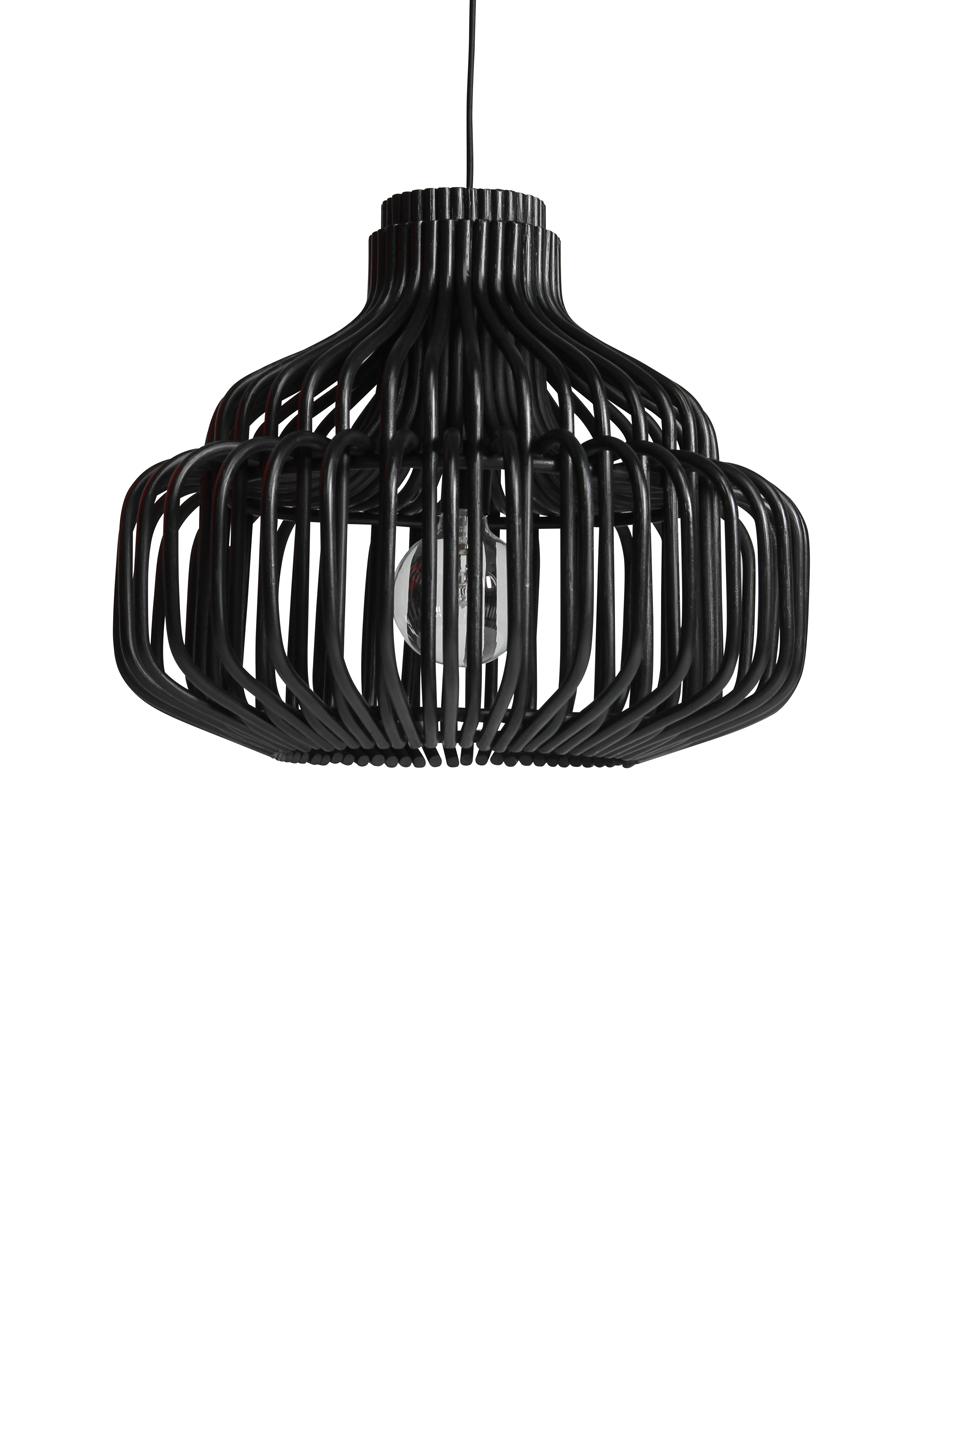 Image of: Endless Pendant Lamp In Black Rattan Vincent Sheppard Contemporary Design Lighting Ref 18110053